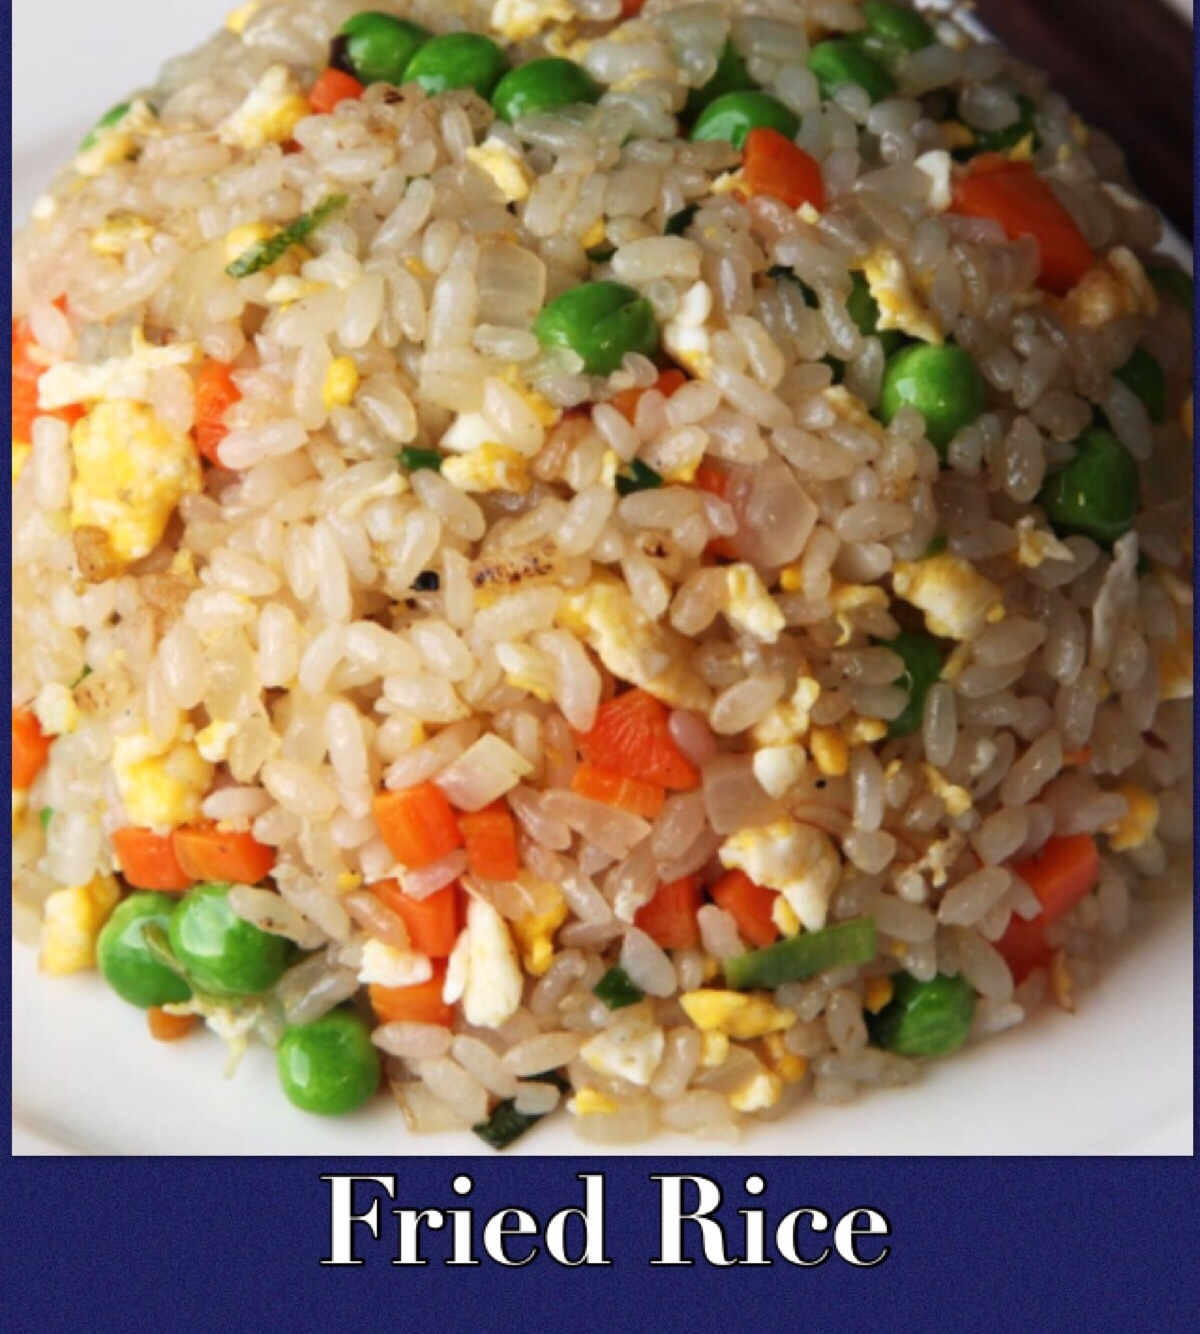 24. VEGETABLES FRIED RICE